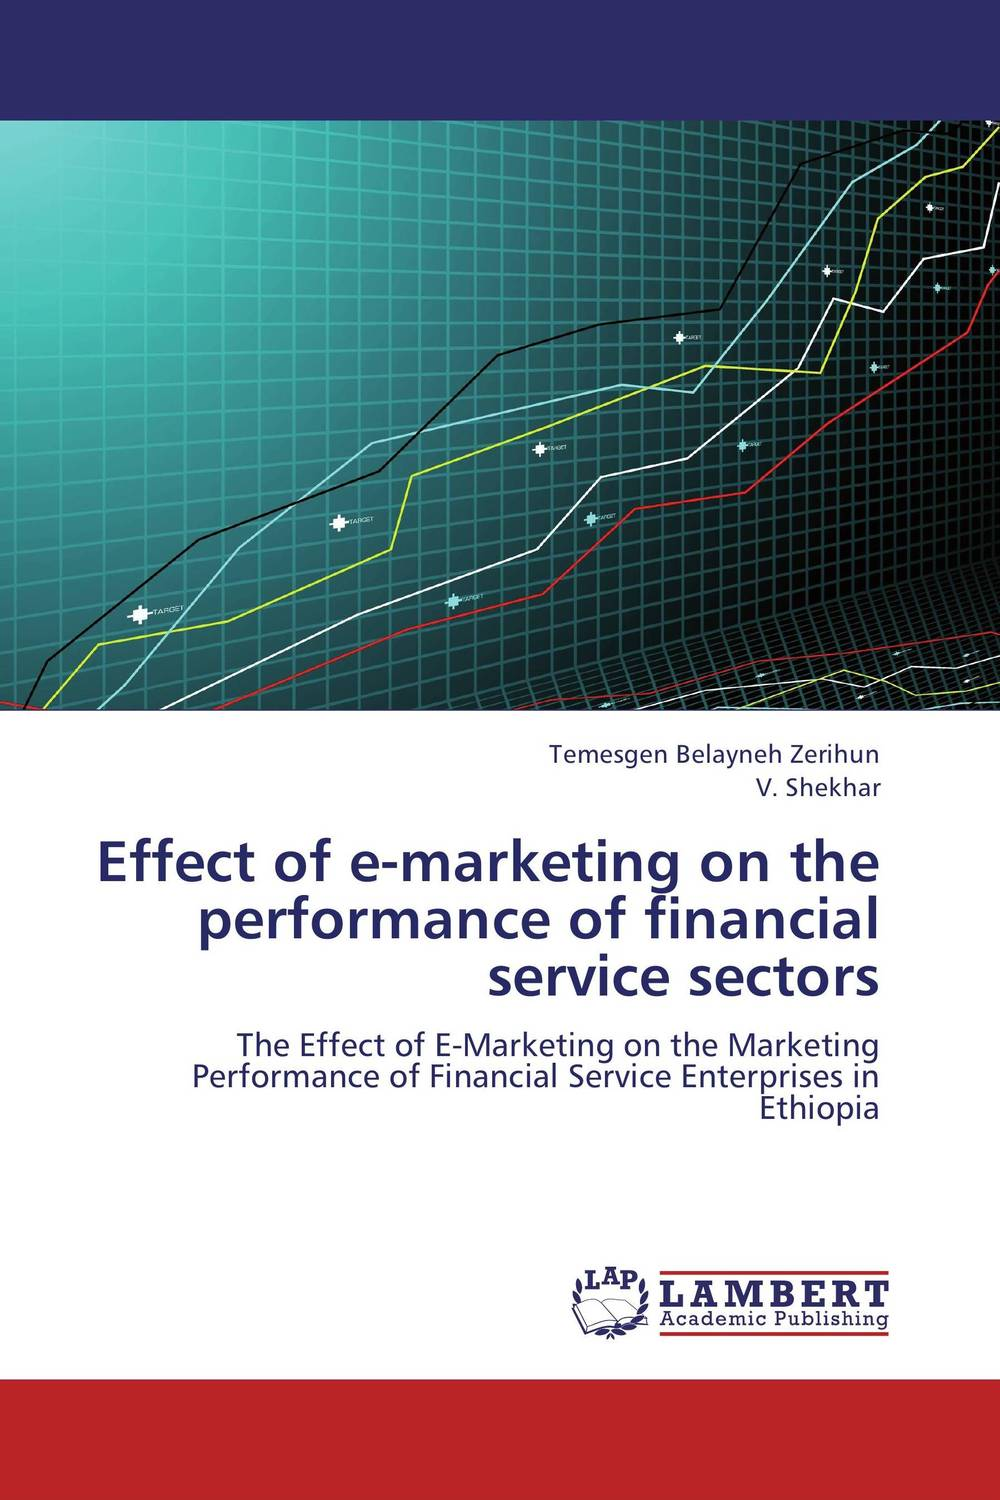 Effect of e-marketing on the performance of financial service sectors hifz ul rahman jalees ahmed bhatti and muhammad saadullah effect of processed alfalfa on the performance of lohi lambs